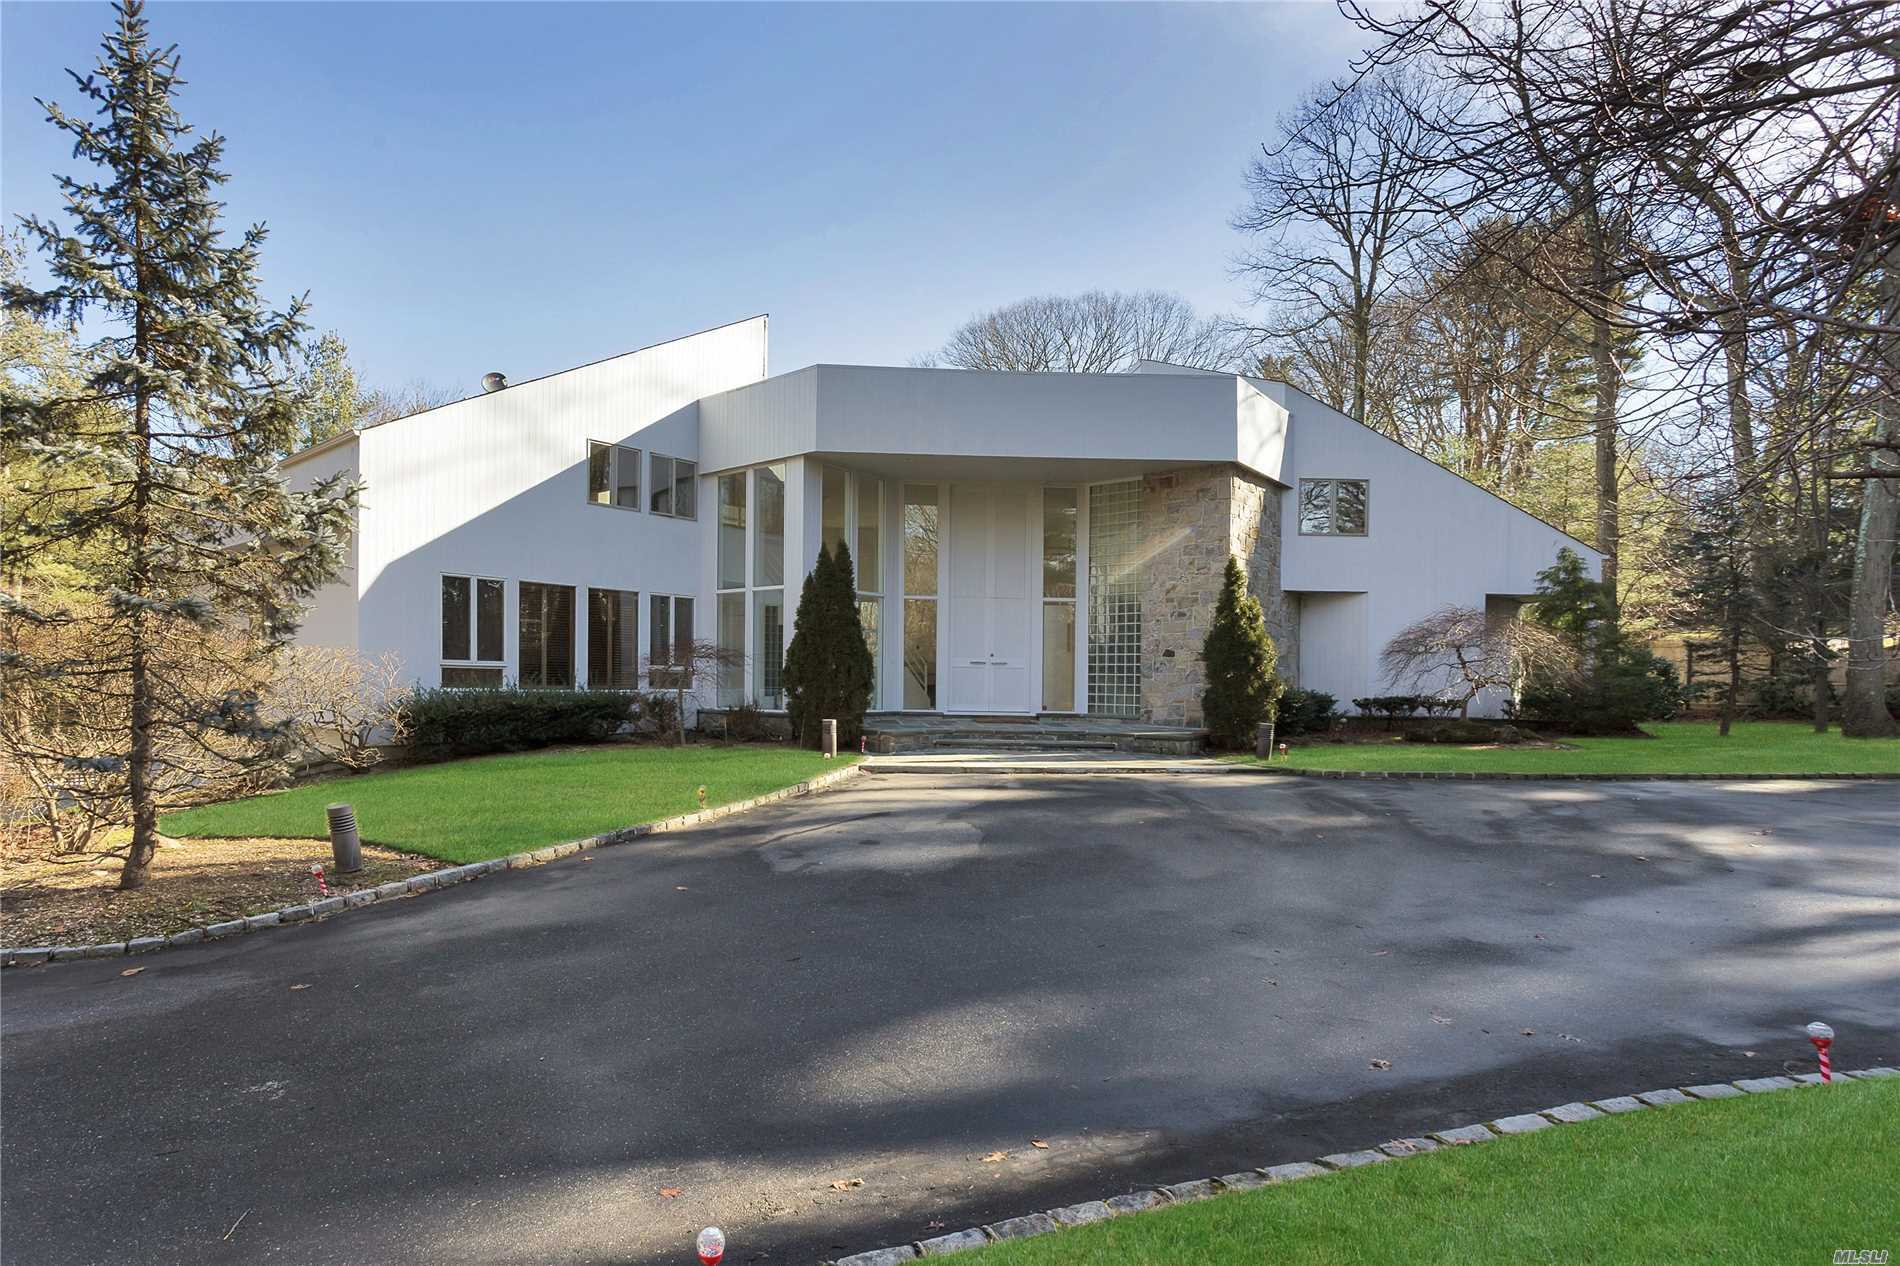 Muttontown. Majestic And Remarkable Contemporary In The Heart Of Muttontown. This Special 5-Bedroom, 4.55-Bath Home With Walls Of Glass Throughout Has A Bright And Airy Open Floorplan. With Natural Light Shining Through; Featuring High Ceilings Throughout, 2-Story Entry Foyer, Dining Room And Living Room, Incredible Chefs Kitchen, Master Bedroom Suite On The Main With Sliding Doors To Deck, Jacuzzi&Sauna, Indoor & Outdoor Inground Pool & Much More!